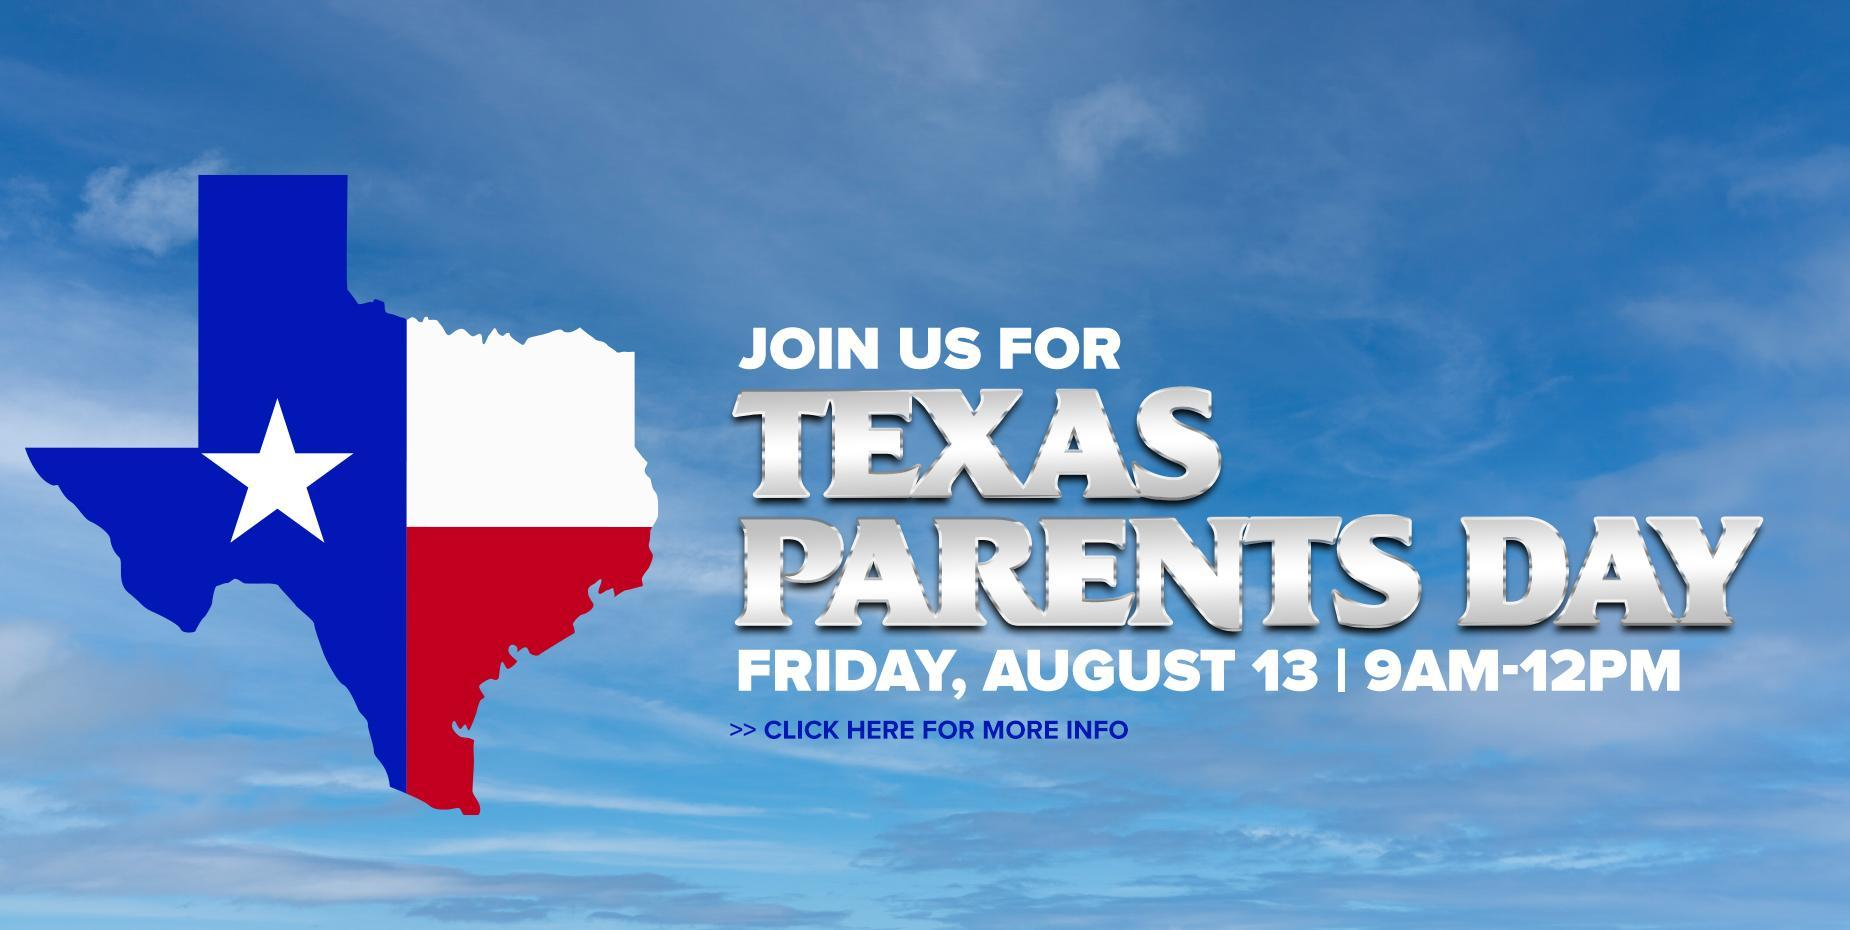 Join Us for Texas Parents Day